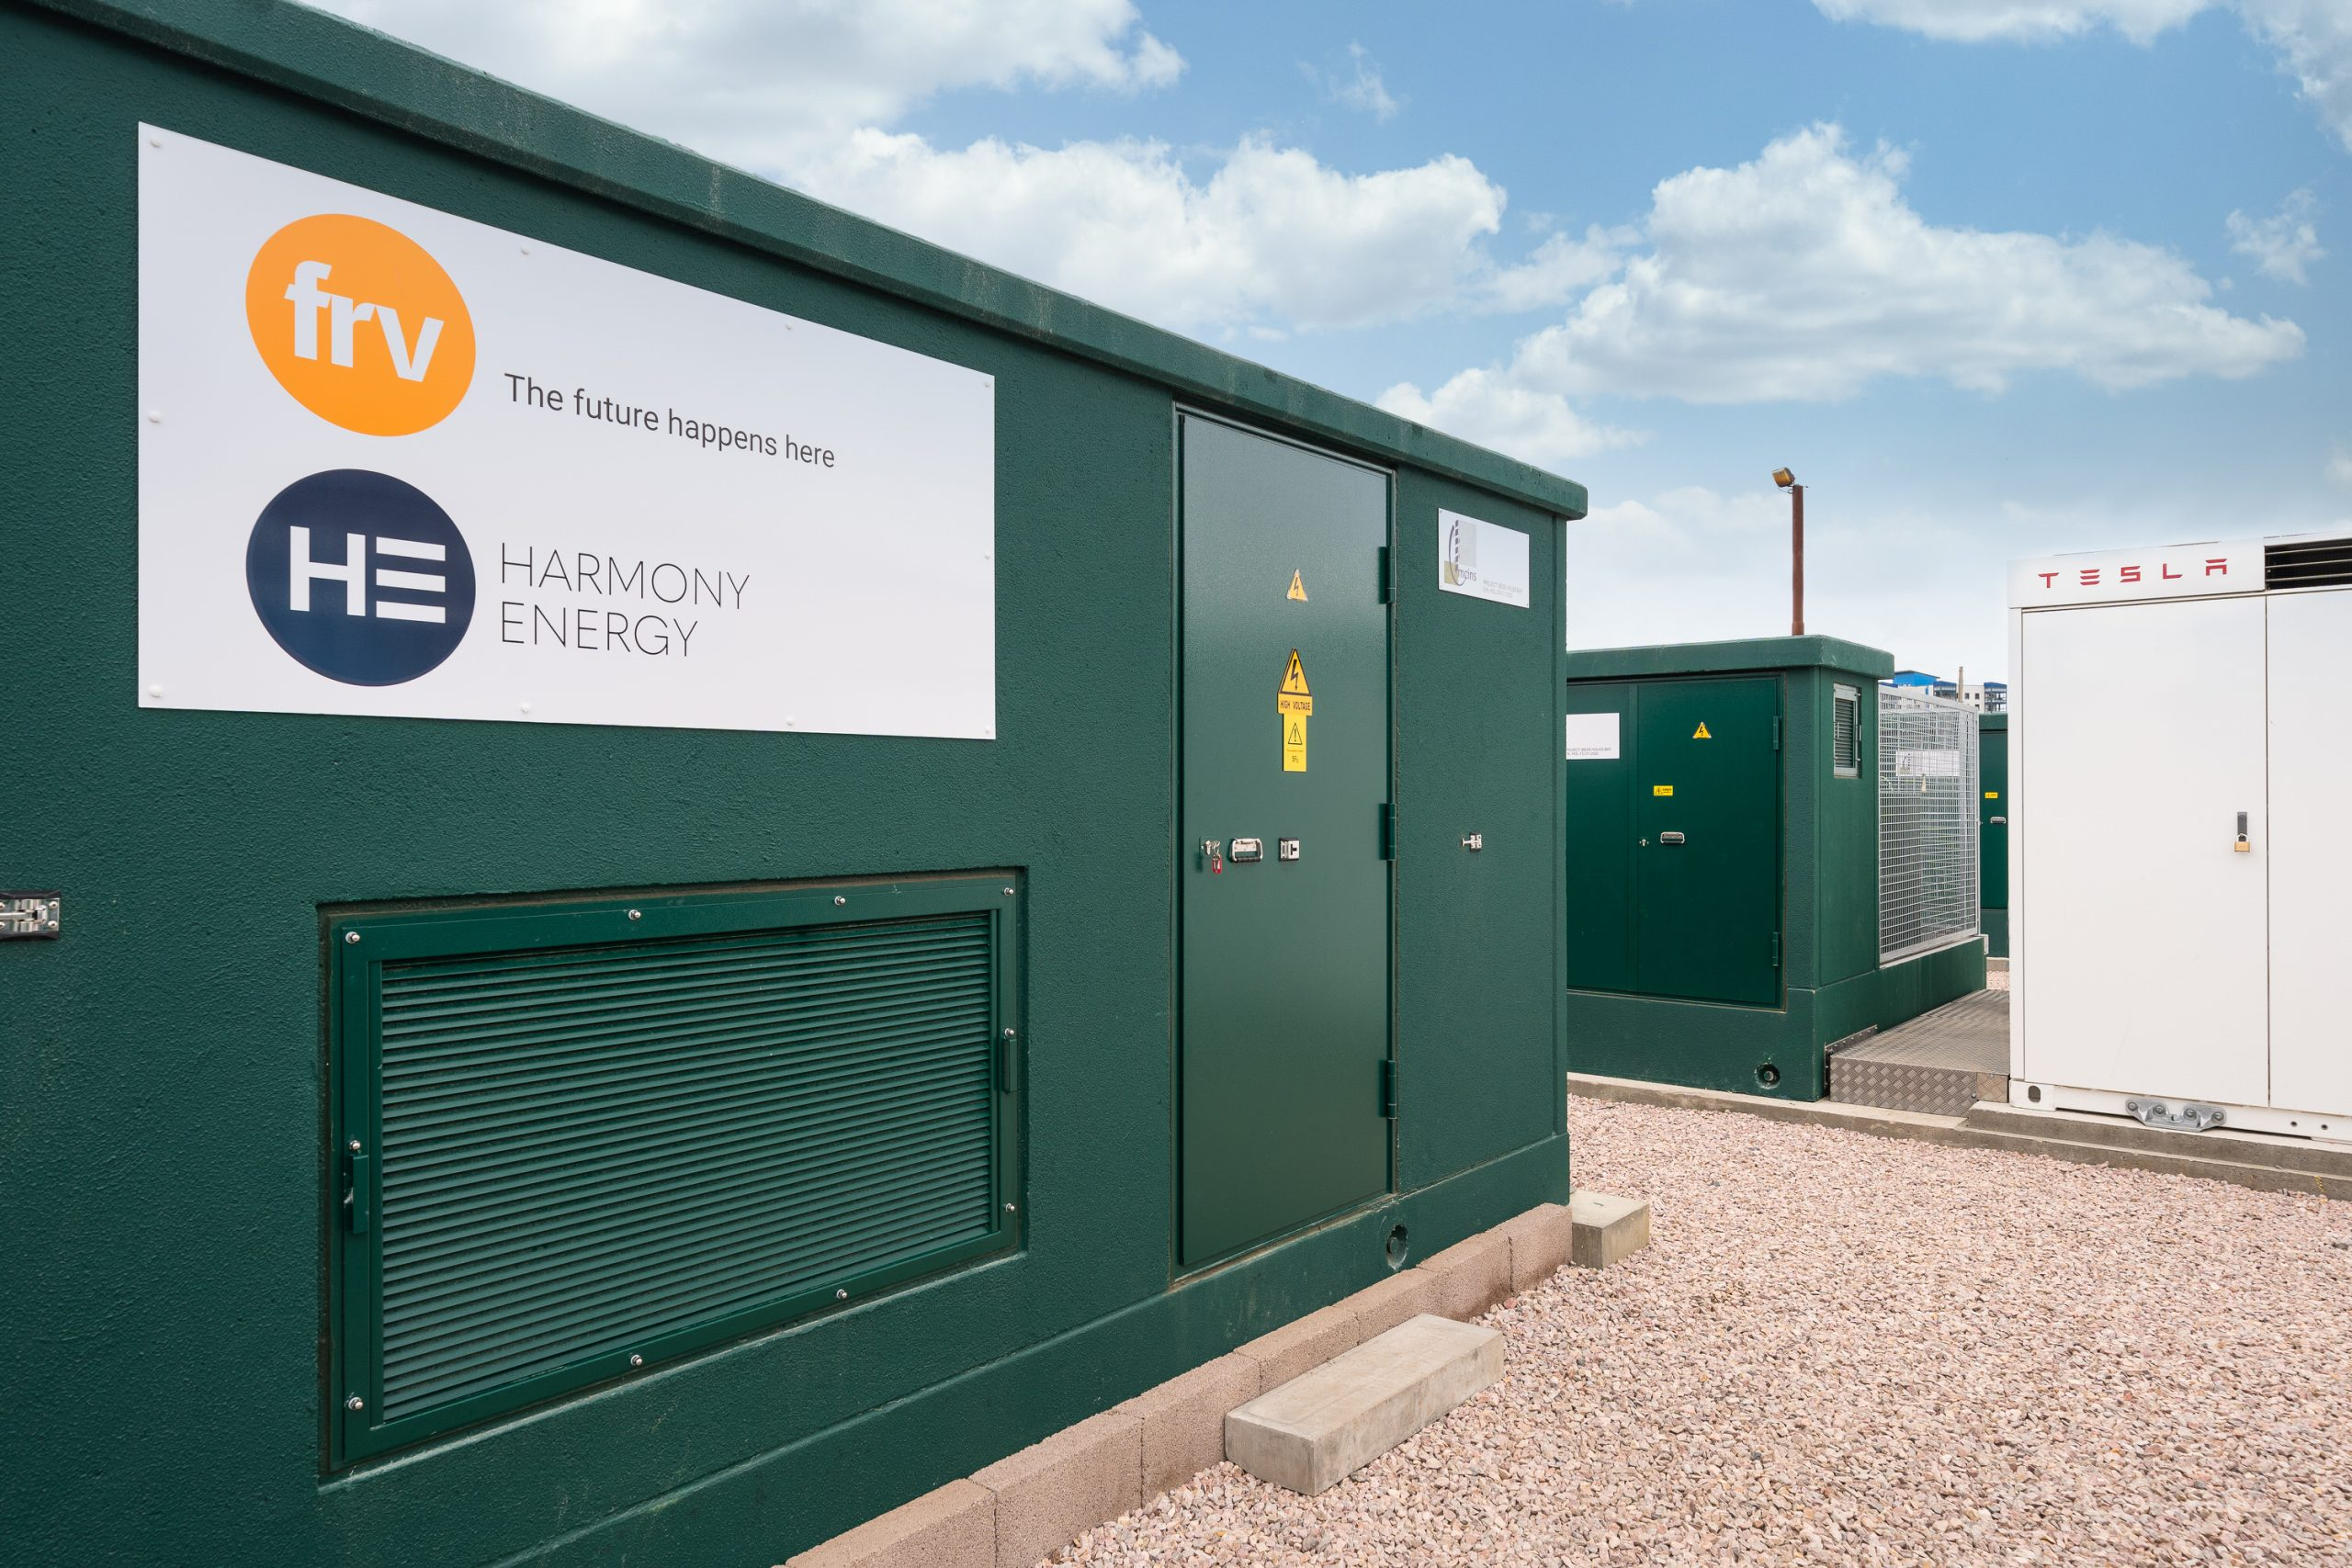 Holes Bay battery energy storage facility – developed by Harmony Energy and FRV with Tesla Megapack batteries